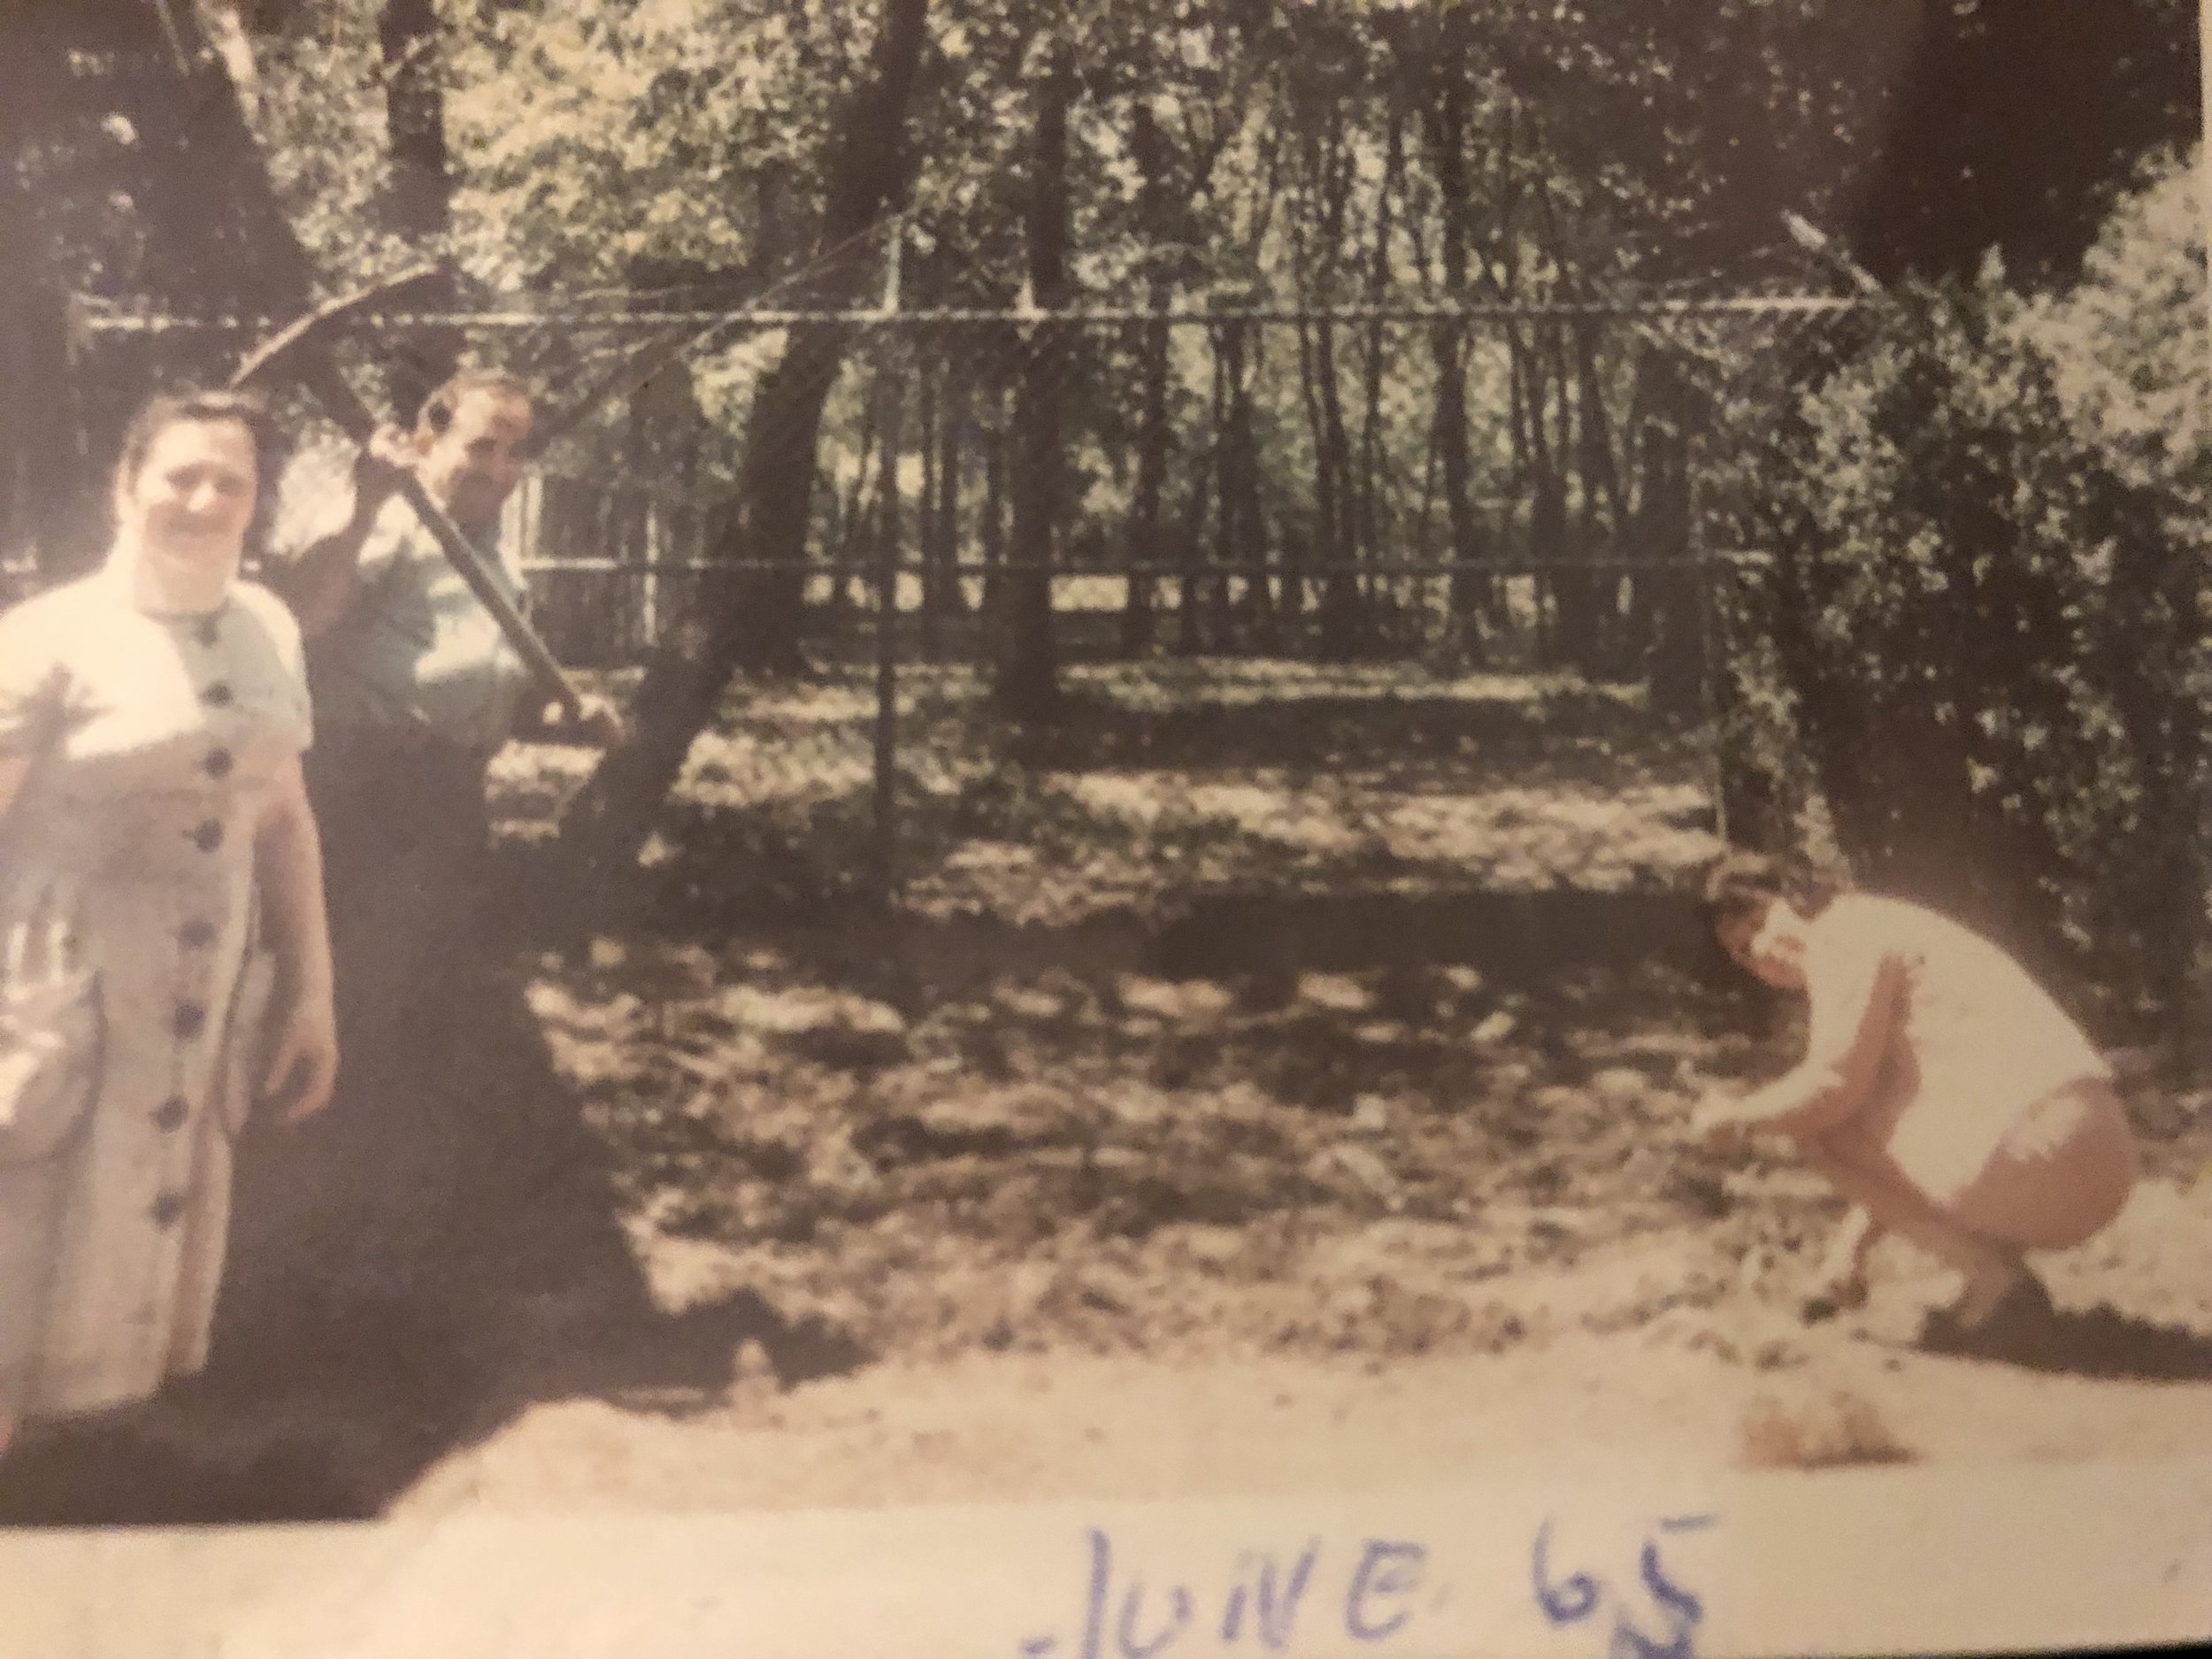 My parents on the left and Sarah Weber on the right gardening 846 Cross Avenue, Elizabeth, NJ June 1965